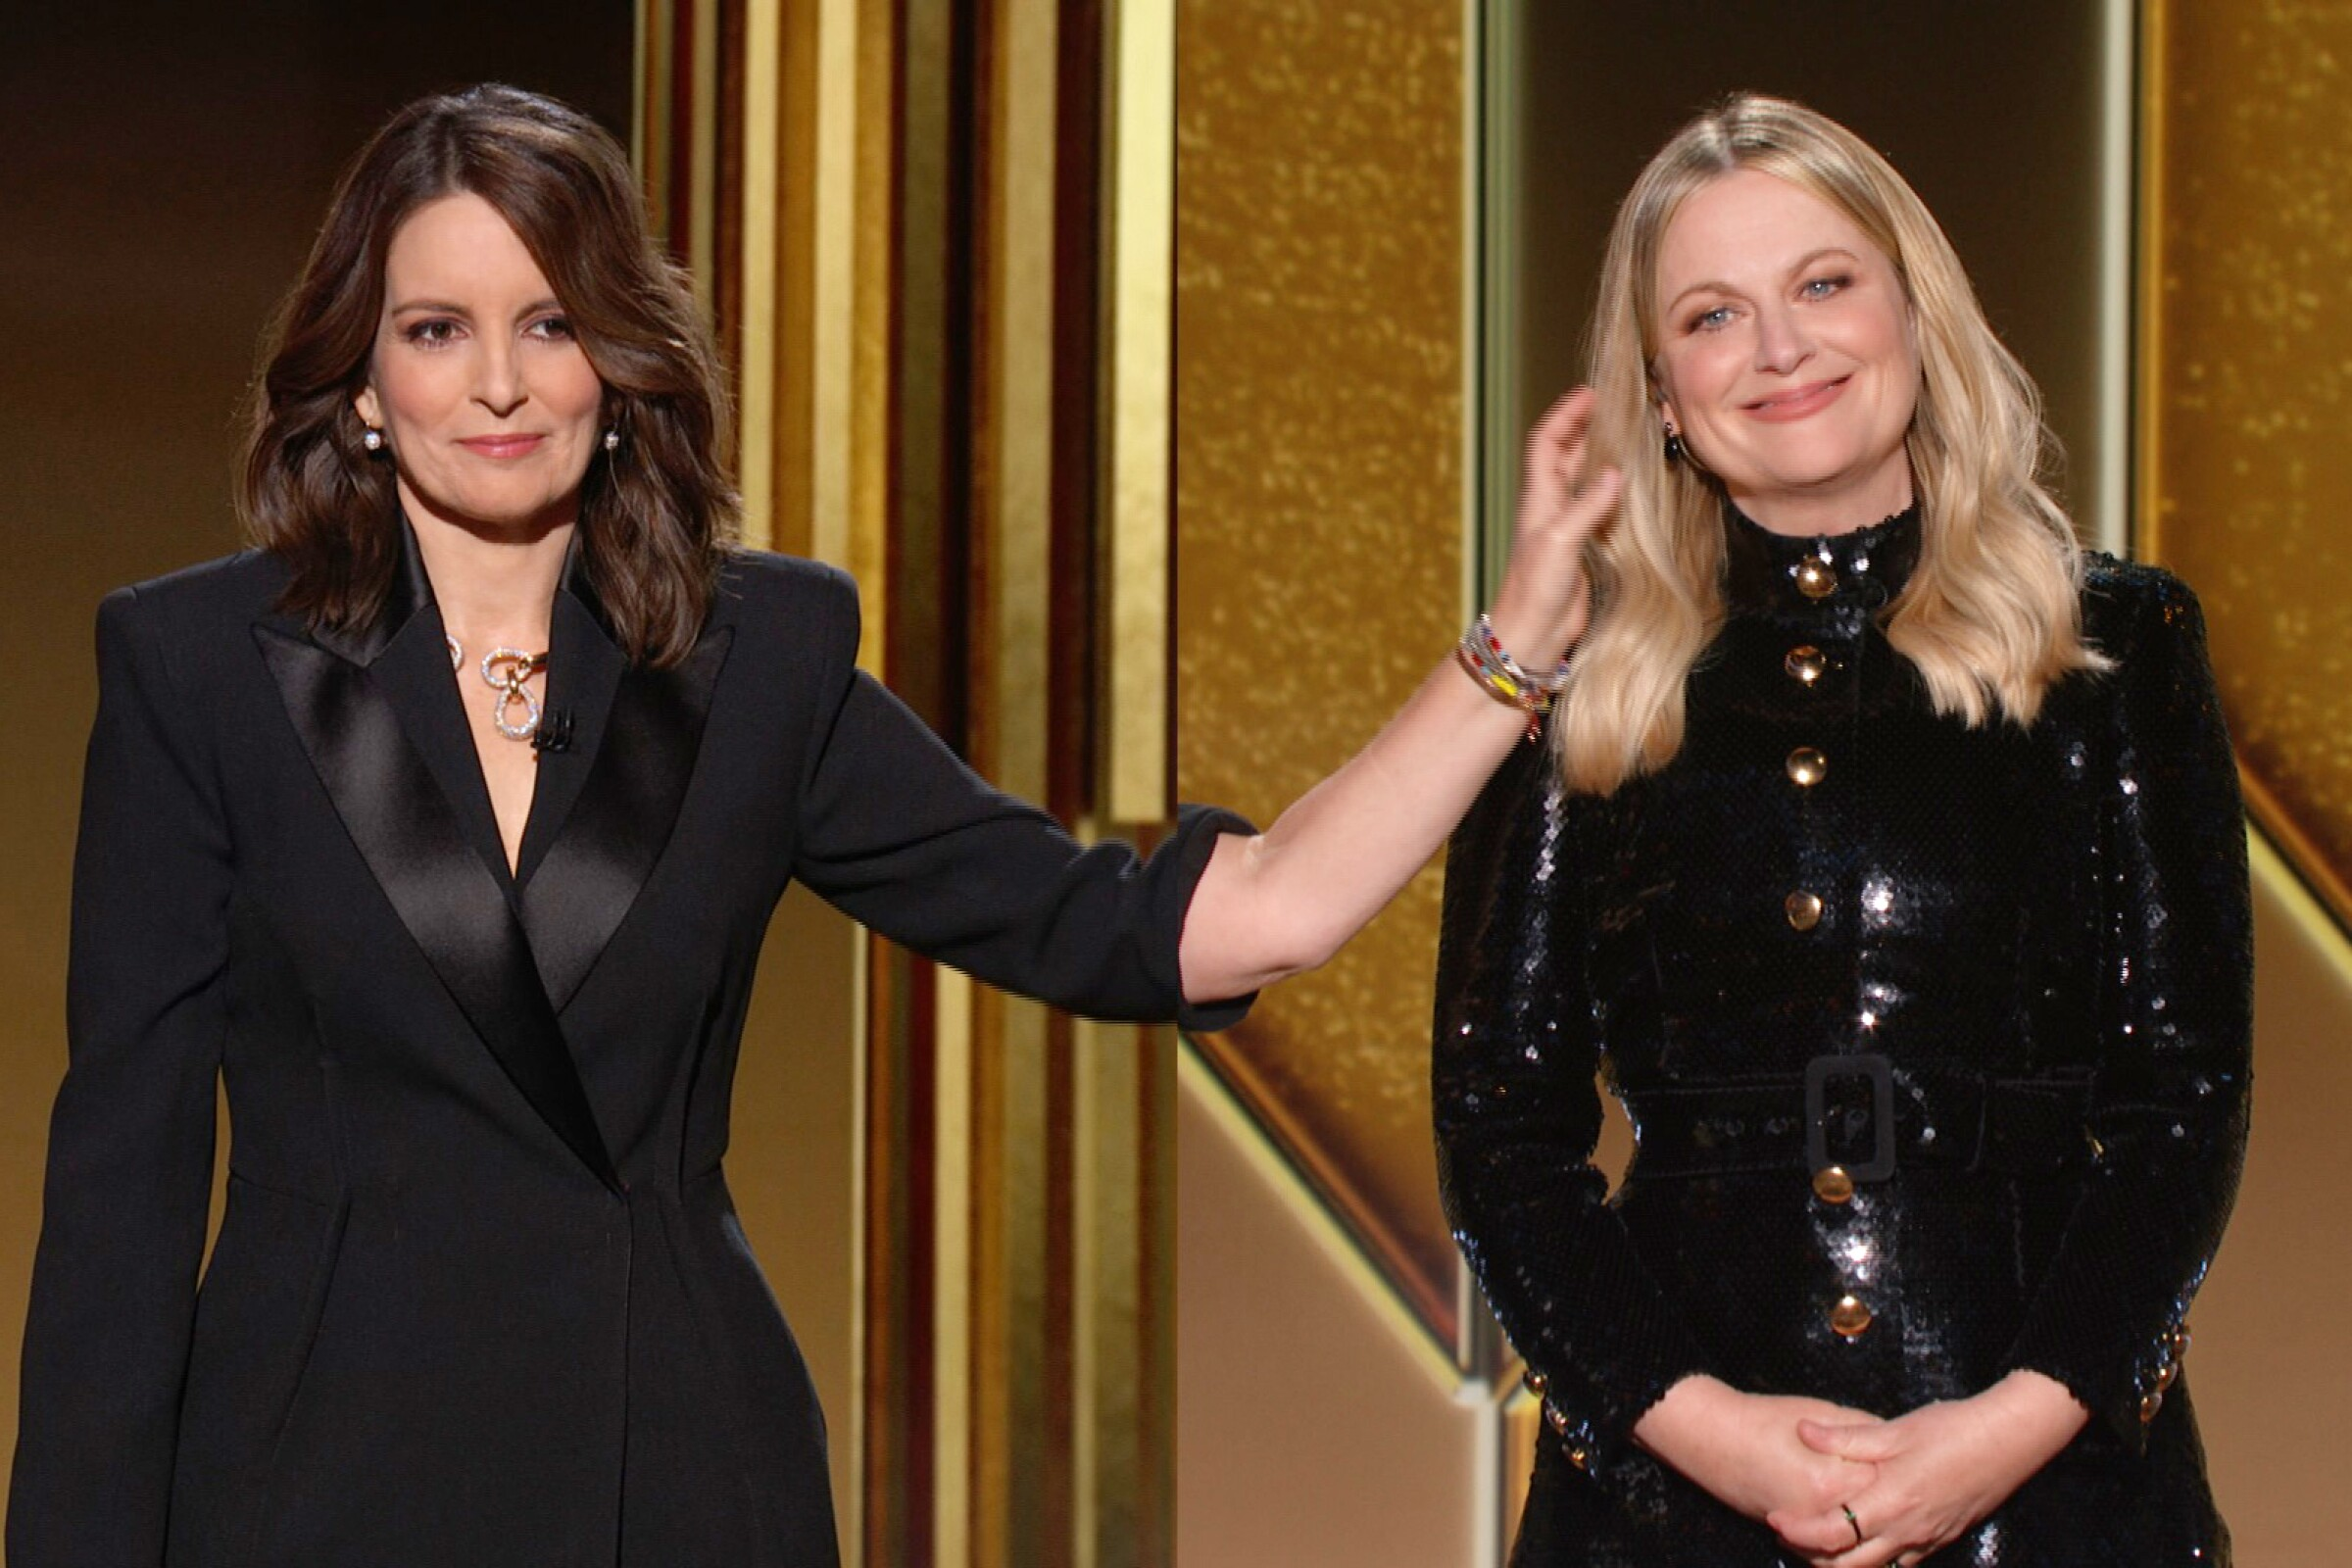 Hosts, Tina Fey and Amy Poehler at the 78th Annual Golden Globe Awards on February 28, 2021.